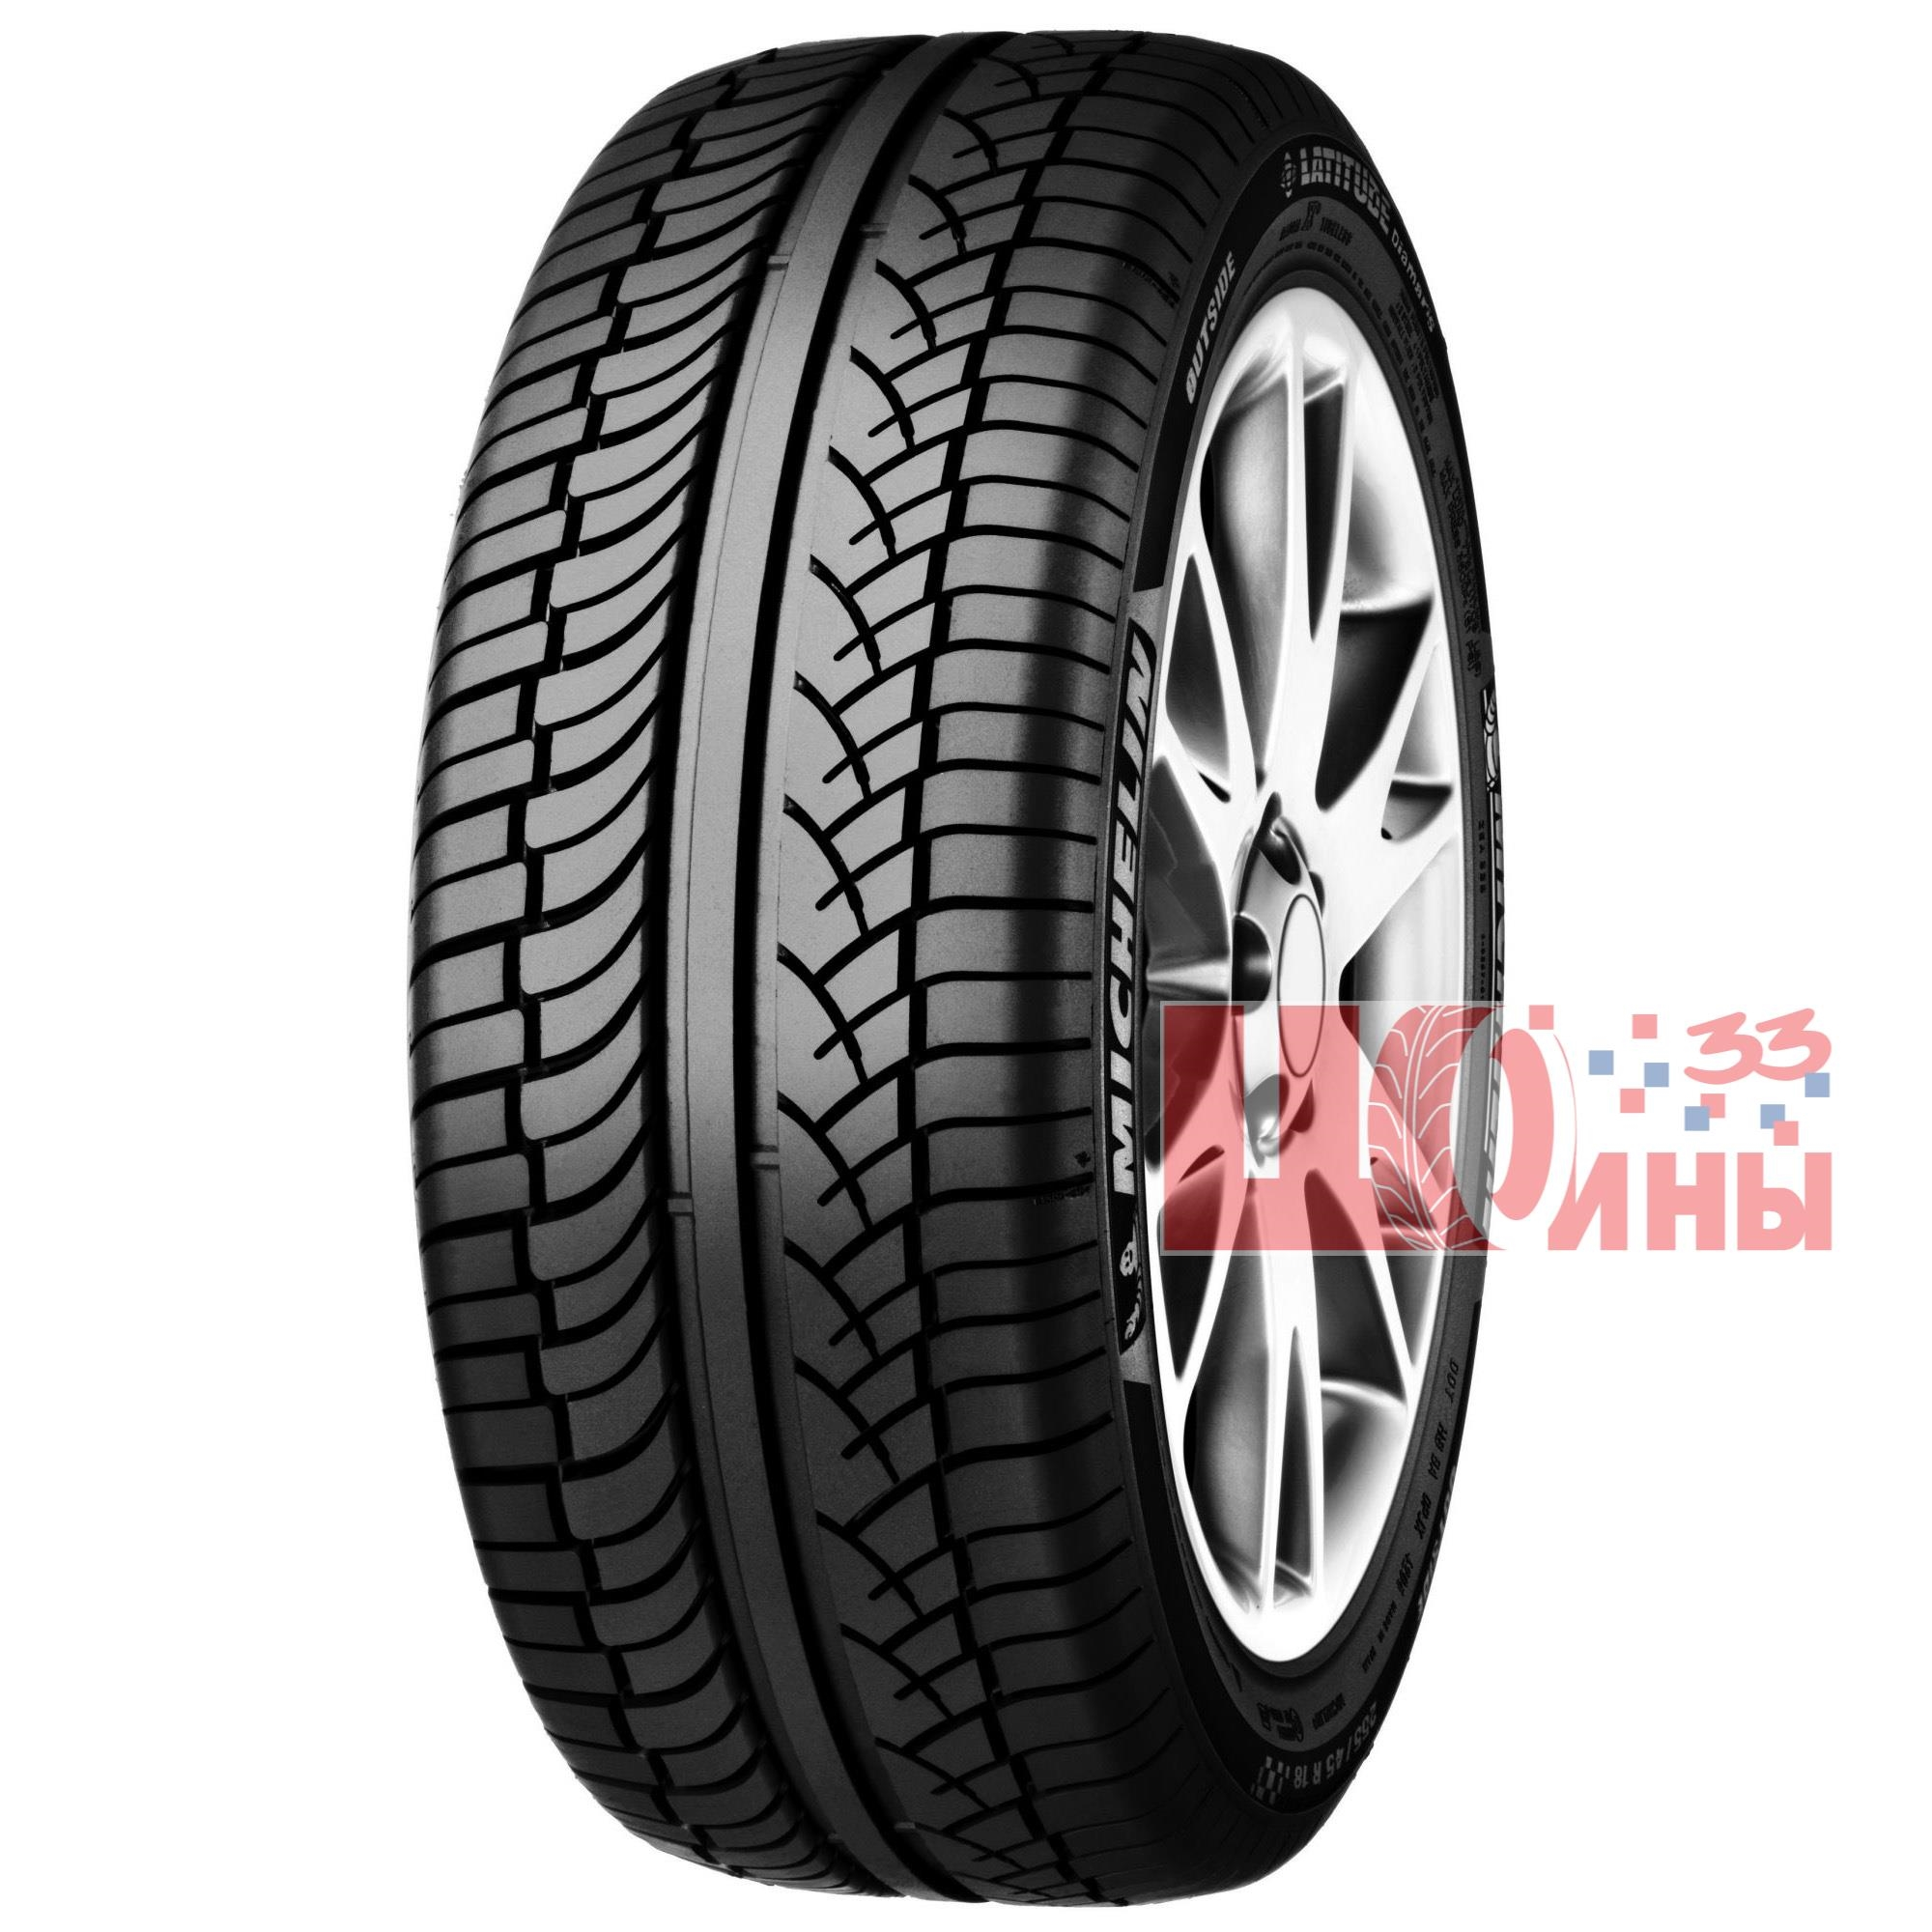 Б/У 235/65 R17 Лето MICHELIN Latitude Diamaris Кат. 3